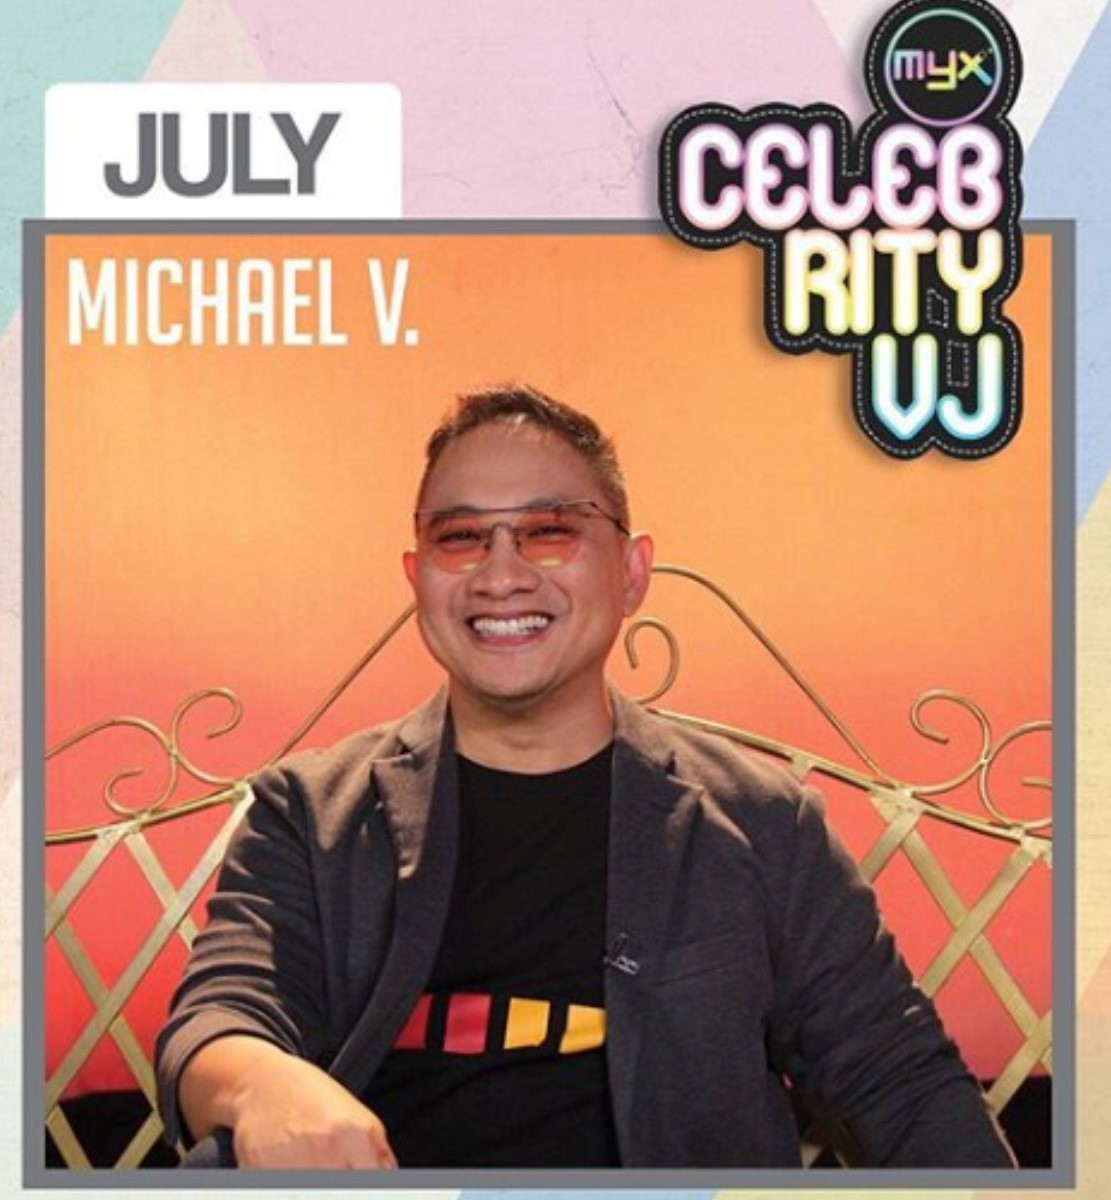 Michael V electrifies on MYX